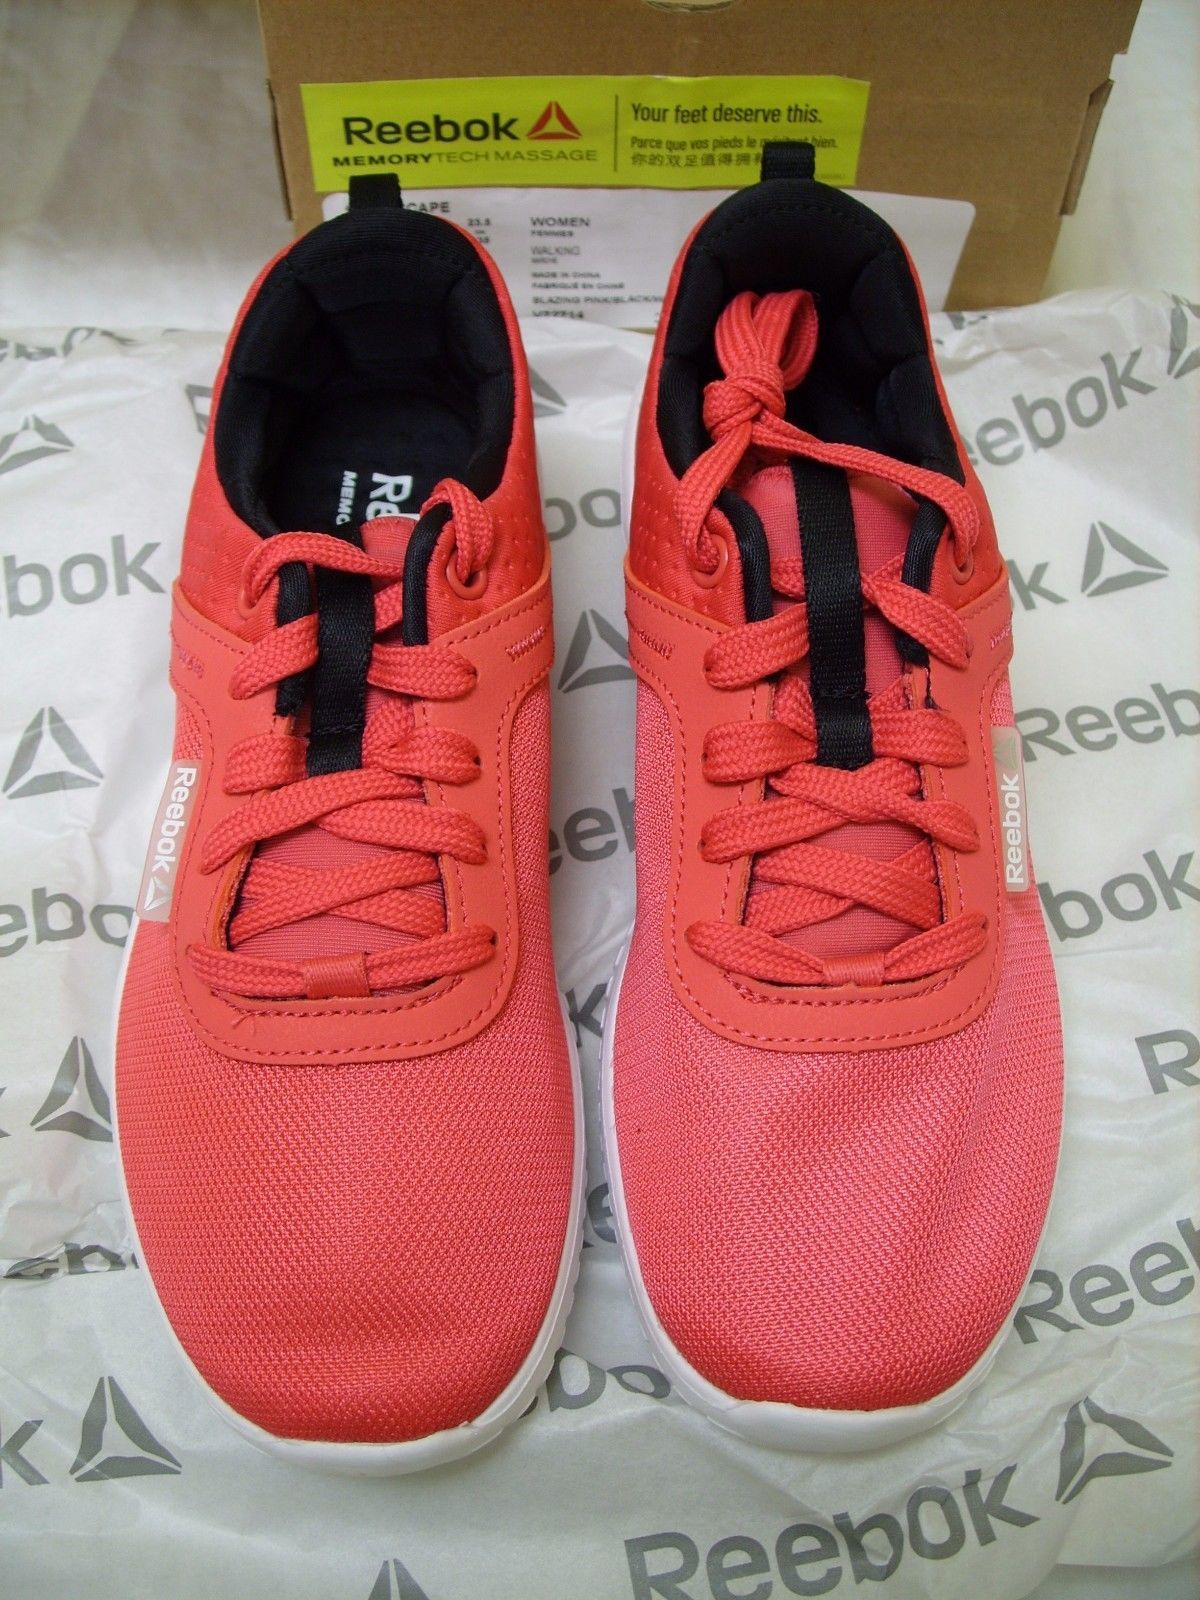 13274dbef0 Details about REEBOK STYLESCAPE - MemoryTech Massage Ladies Walking ...